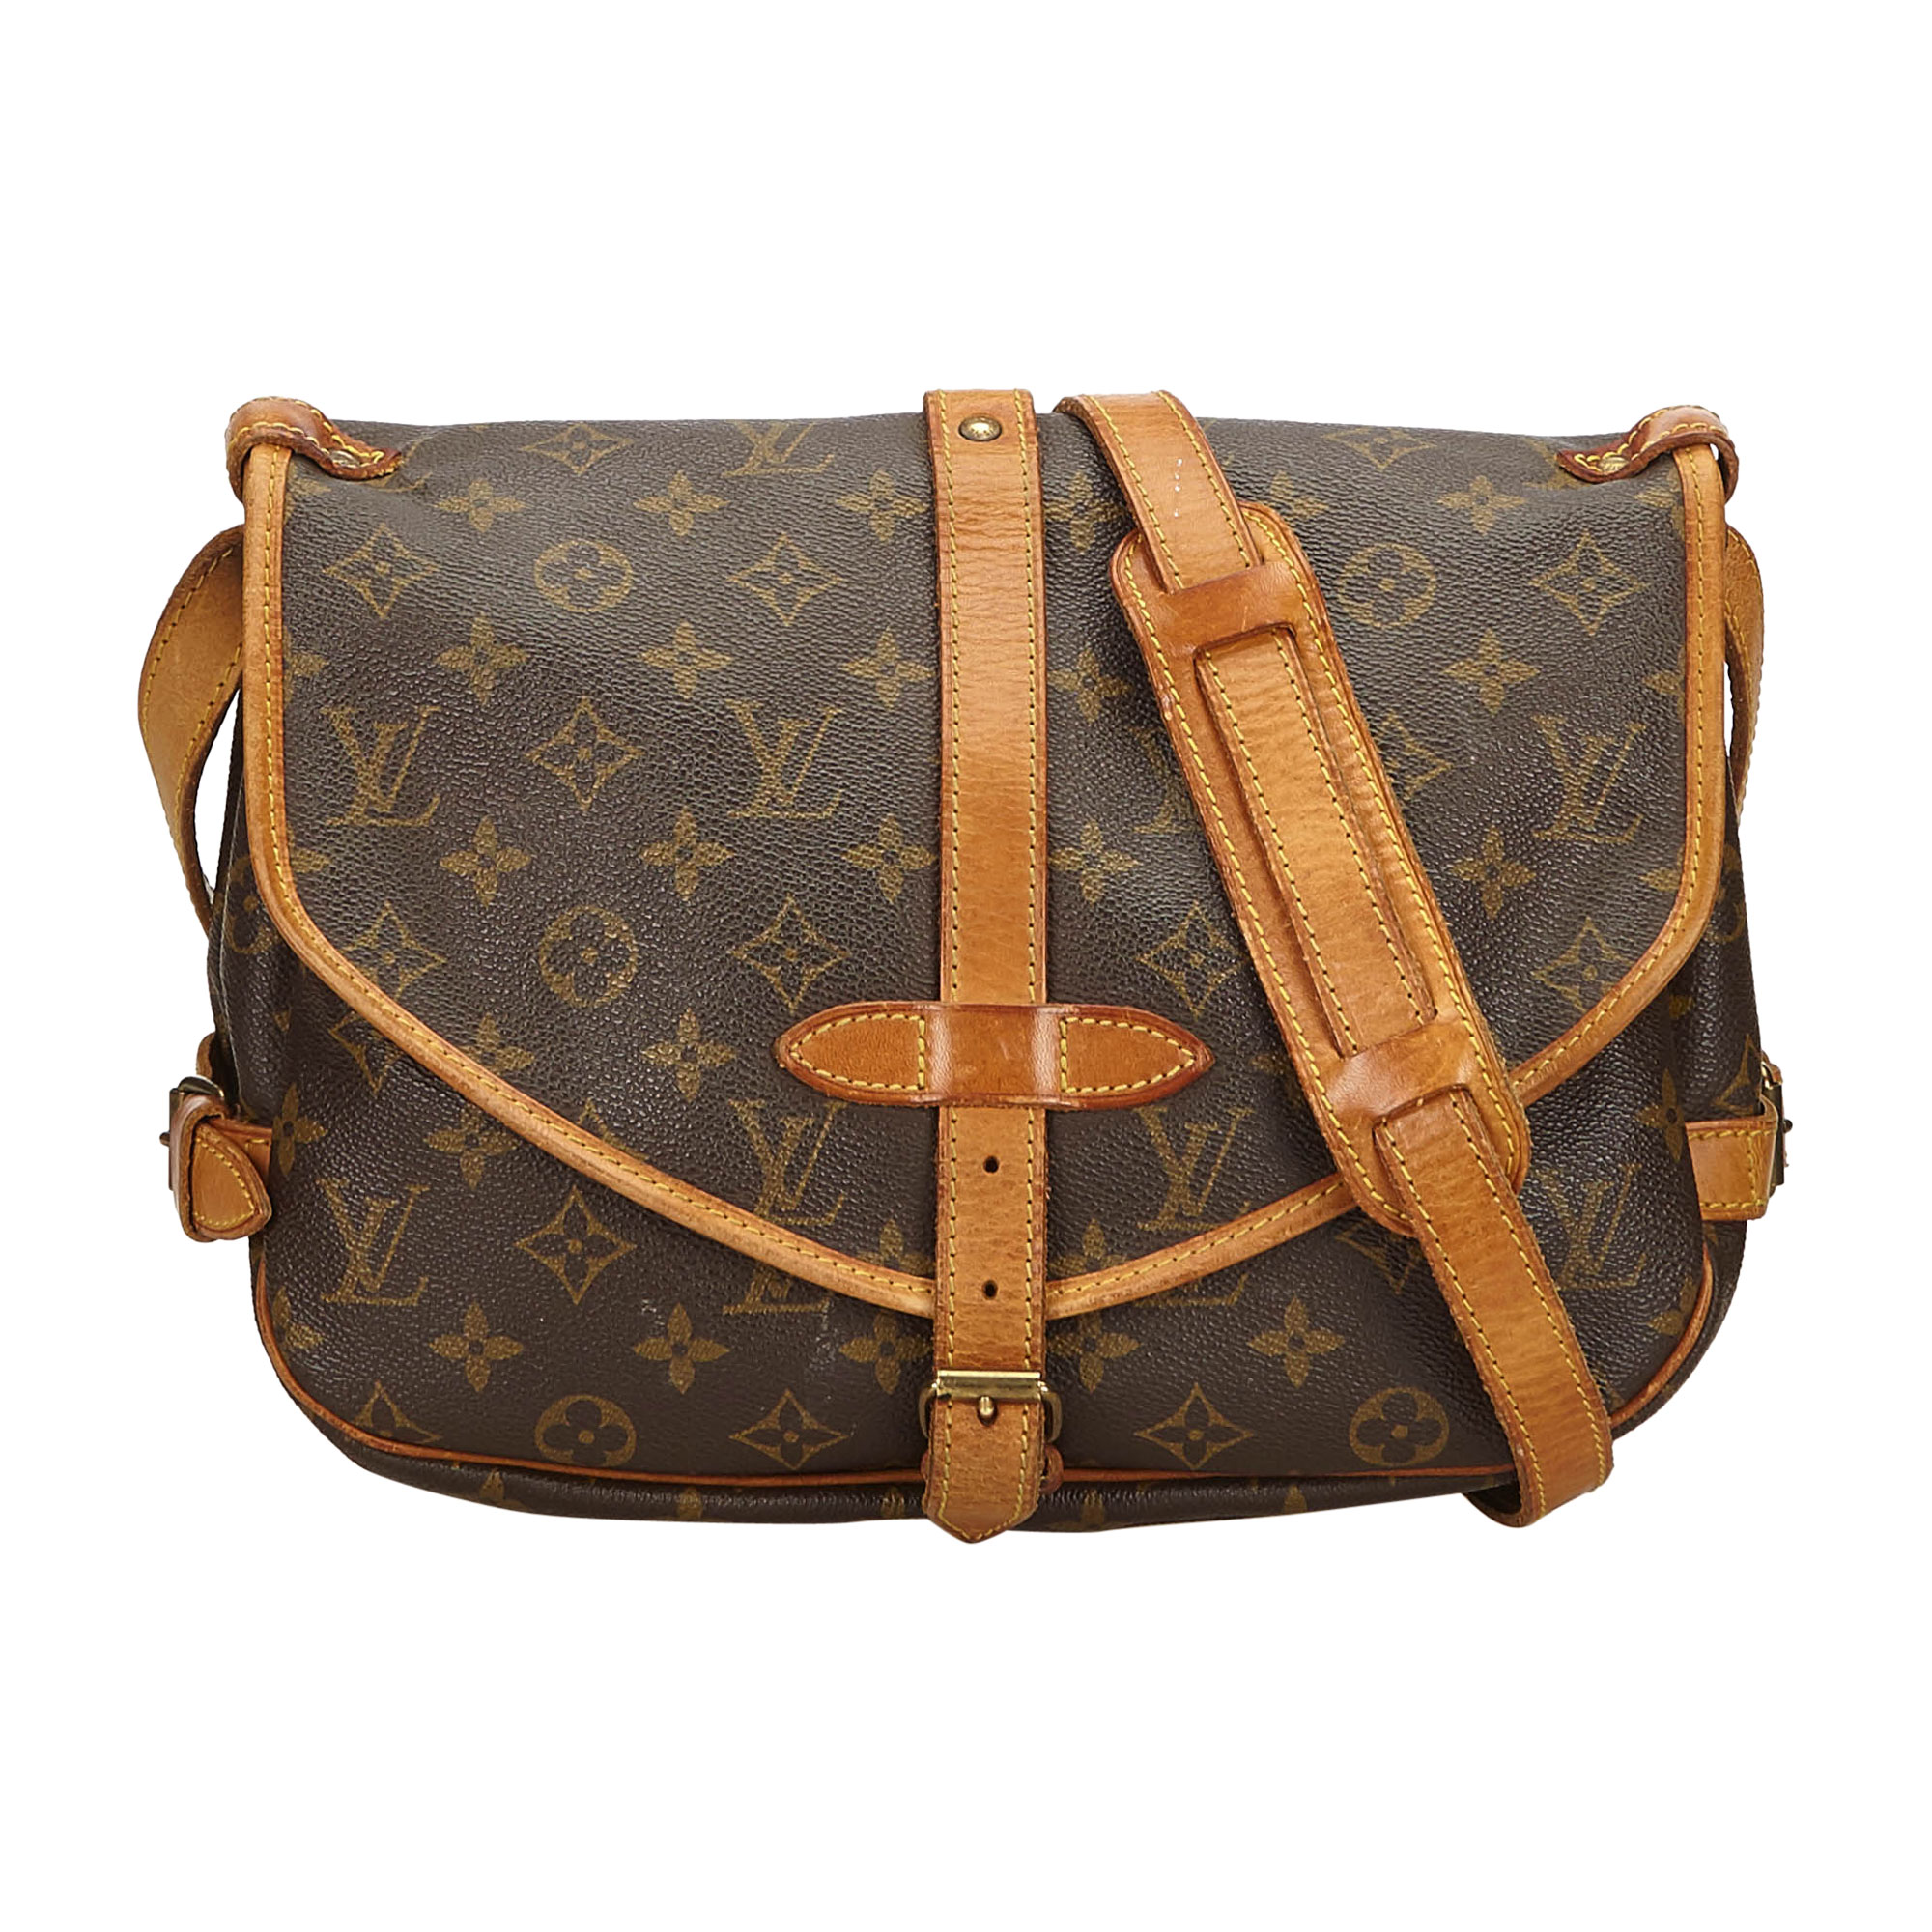 Sac en bandoulière en cuir LOUIS VUITTON brown - 8015826 e1cb6cb7112